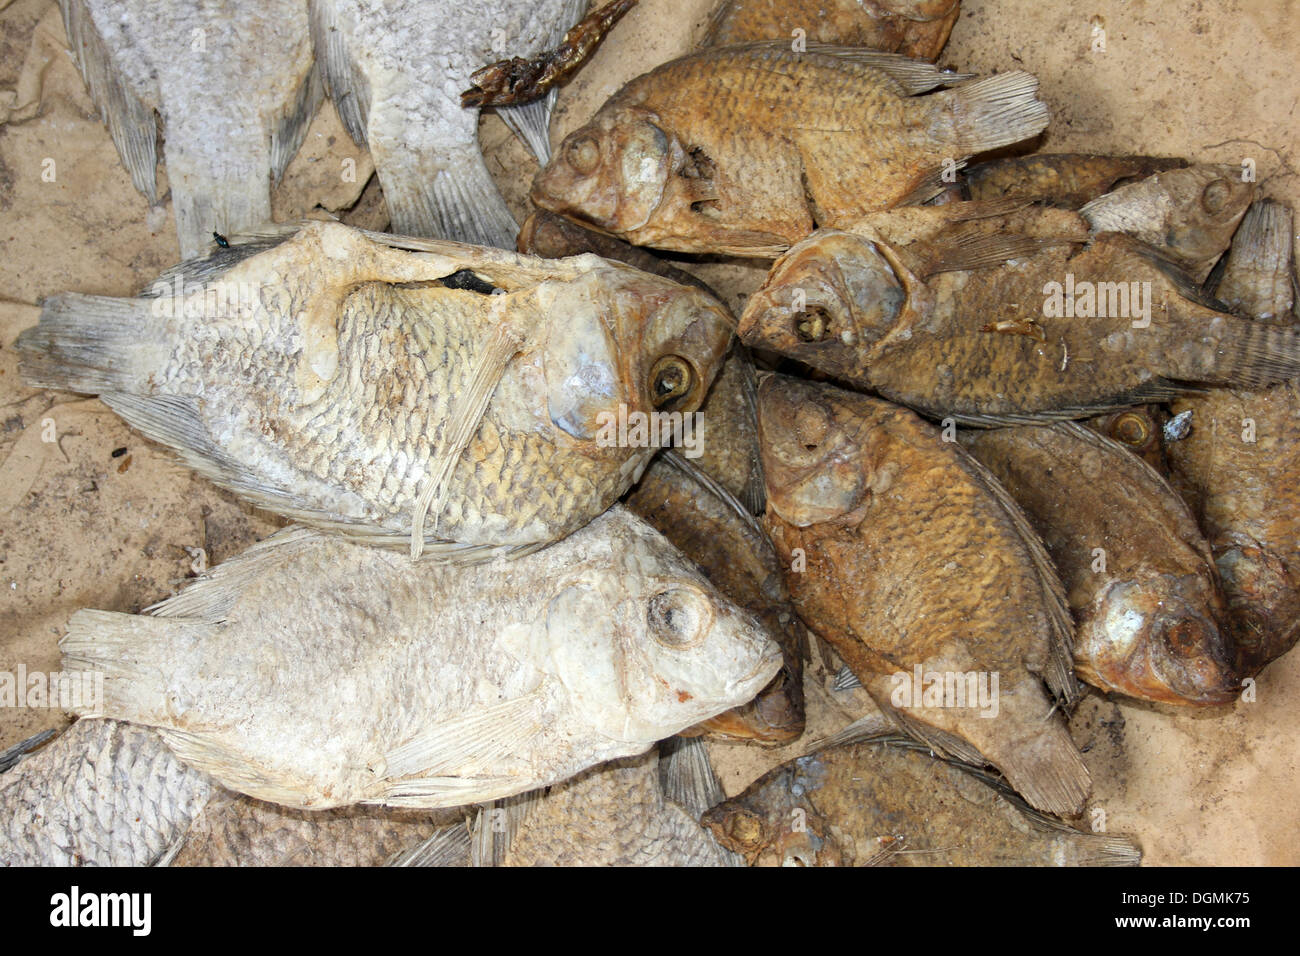 Koobi dried salted tilapia fish stock photo royalty for Dried salted fish